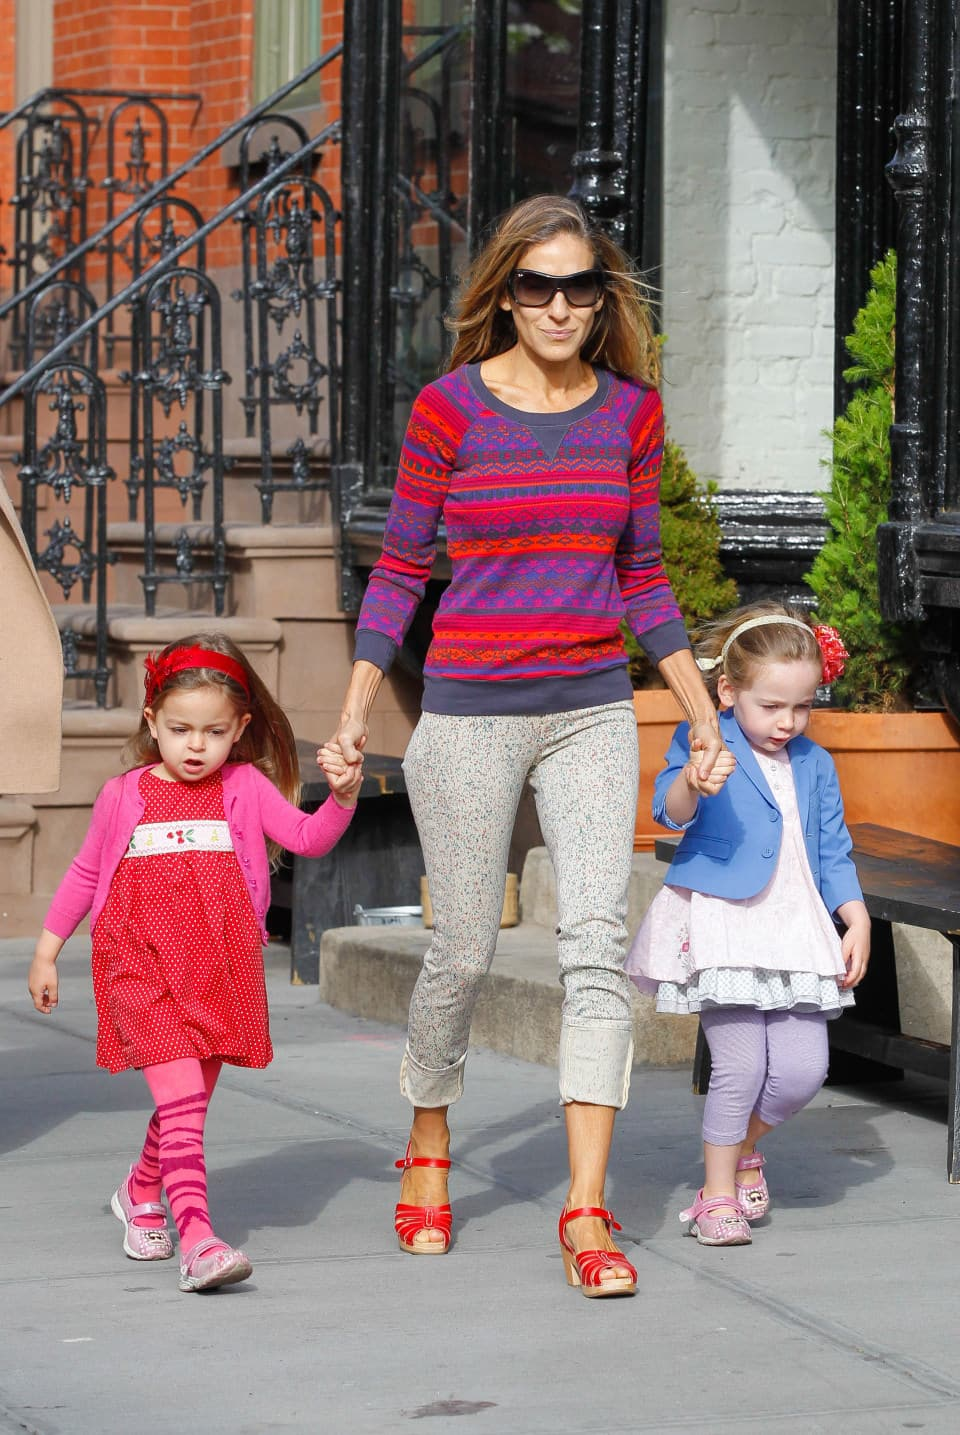 New York, NY - A colorful Sarah Jessica Parker takes the twins to school on a wonderful spring morning.  Sarah watched the girls play and took time to fix Marion's rose head band.  On the way home she stopped to read a political sign at the street. AKM-GSI          April 18, 2013 To License These Photos, Please Contact : Steve Ginsburg (310) 505-8447 (323) 4239397 steve@ginsburgspalyinc.com sales@ginsburgspalyinc.com or Keith Stockwell (310) 261-8649 keith@ginsburgspalyinc.com ginsburgspalyinc@gmail.com